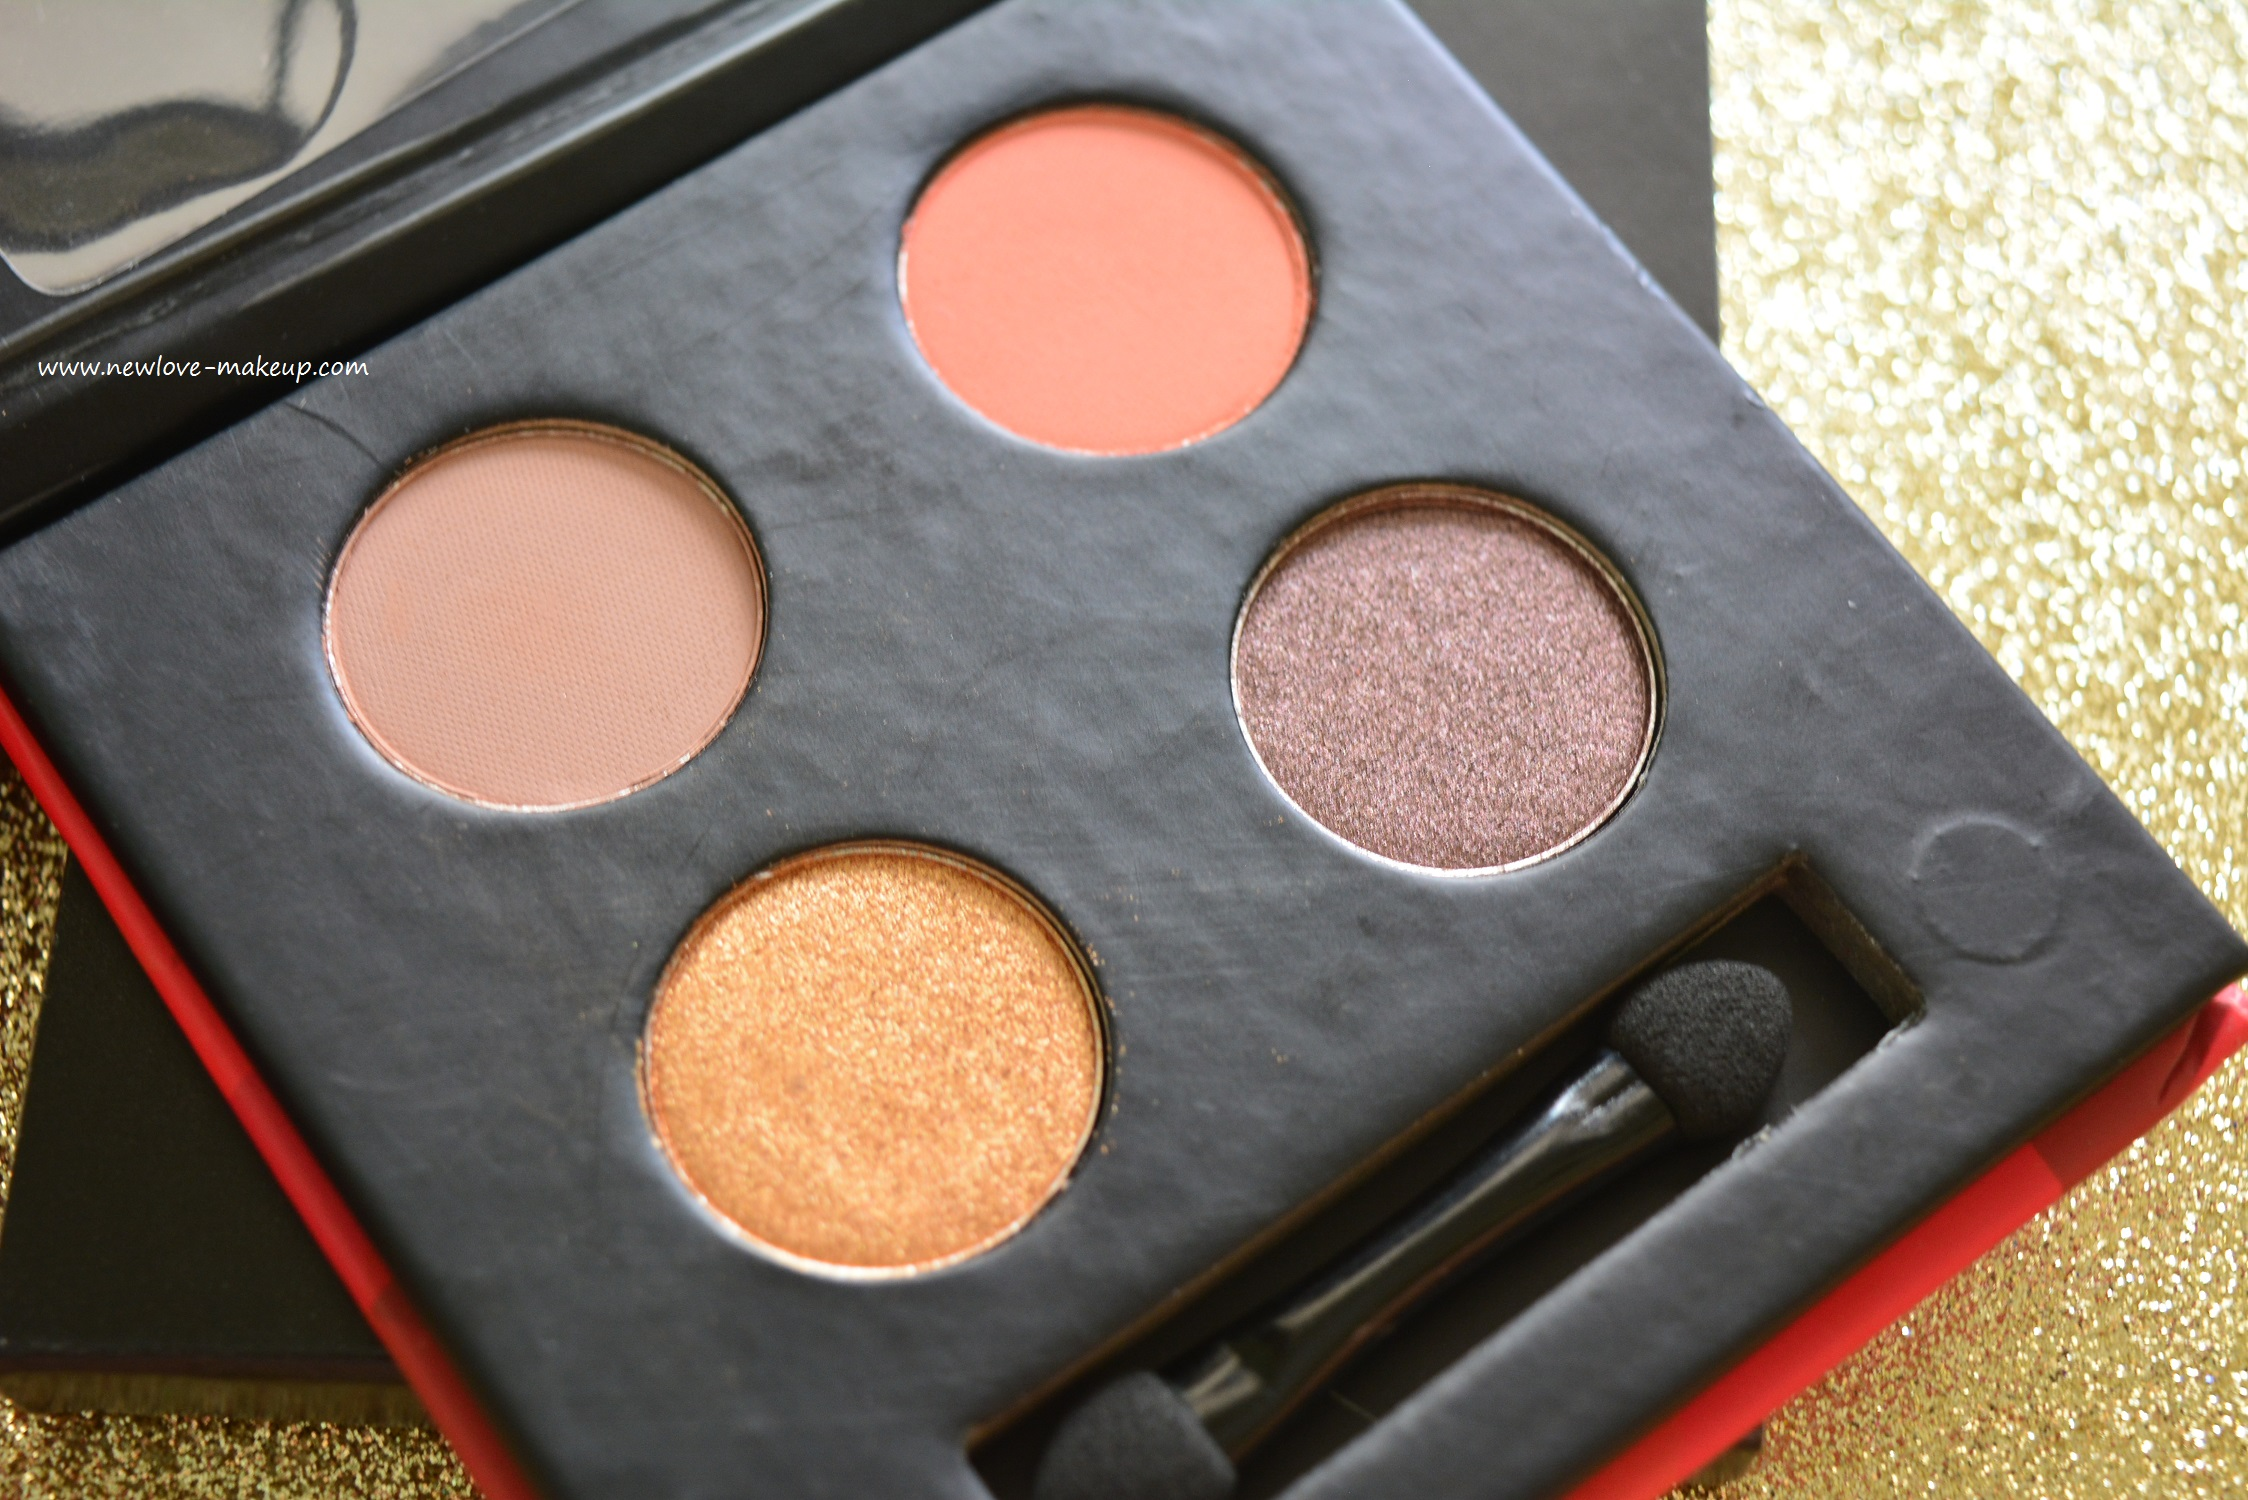 Sugar Blend The Rules Eyeshadow Quads Review, Swatches, Looks